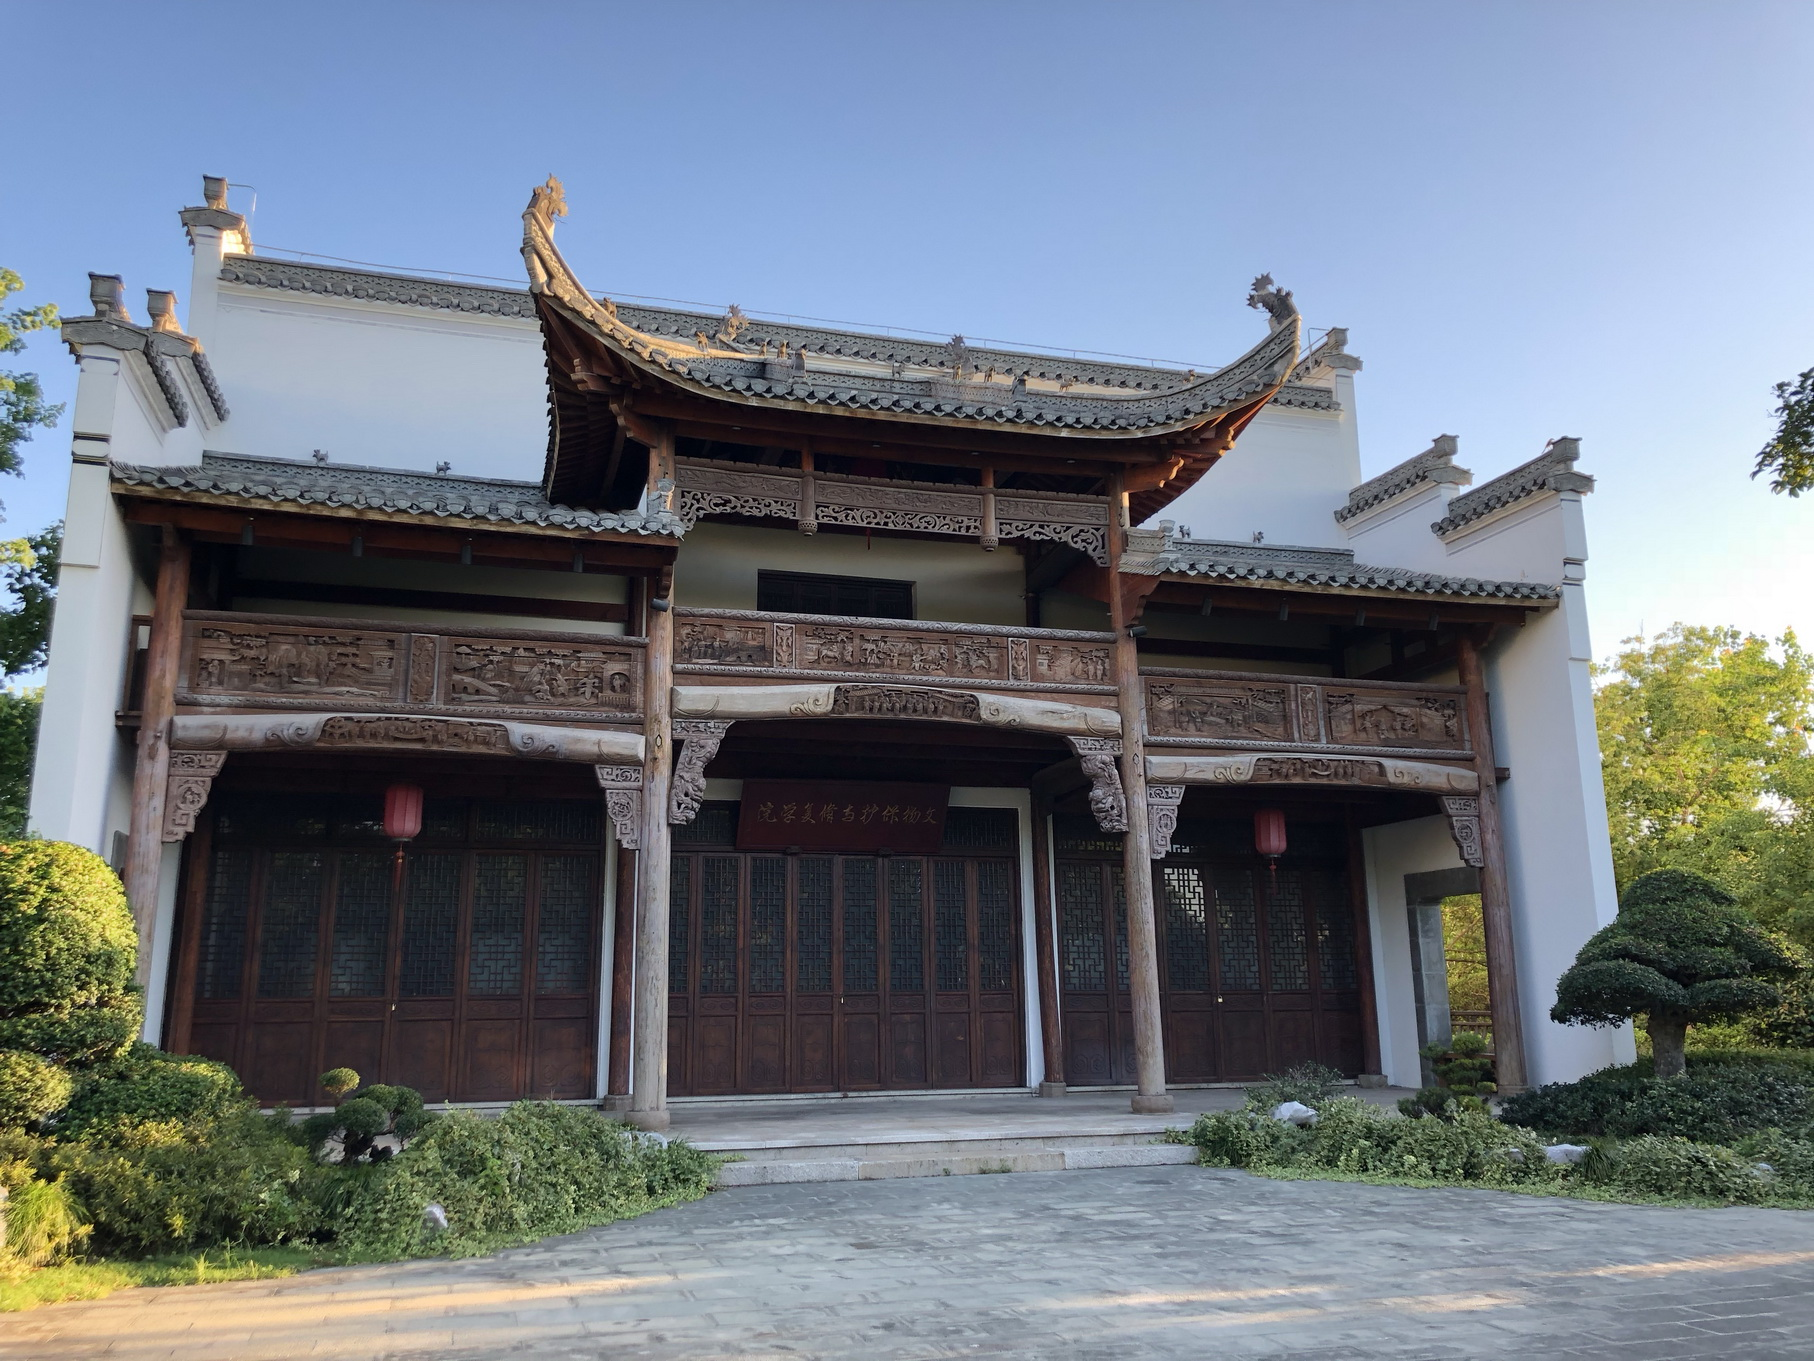 Qing dynasty teahouse on campus at Shanghai Institute of Visual Arts